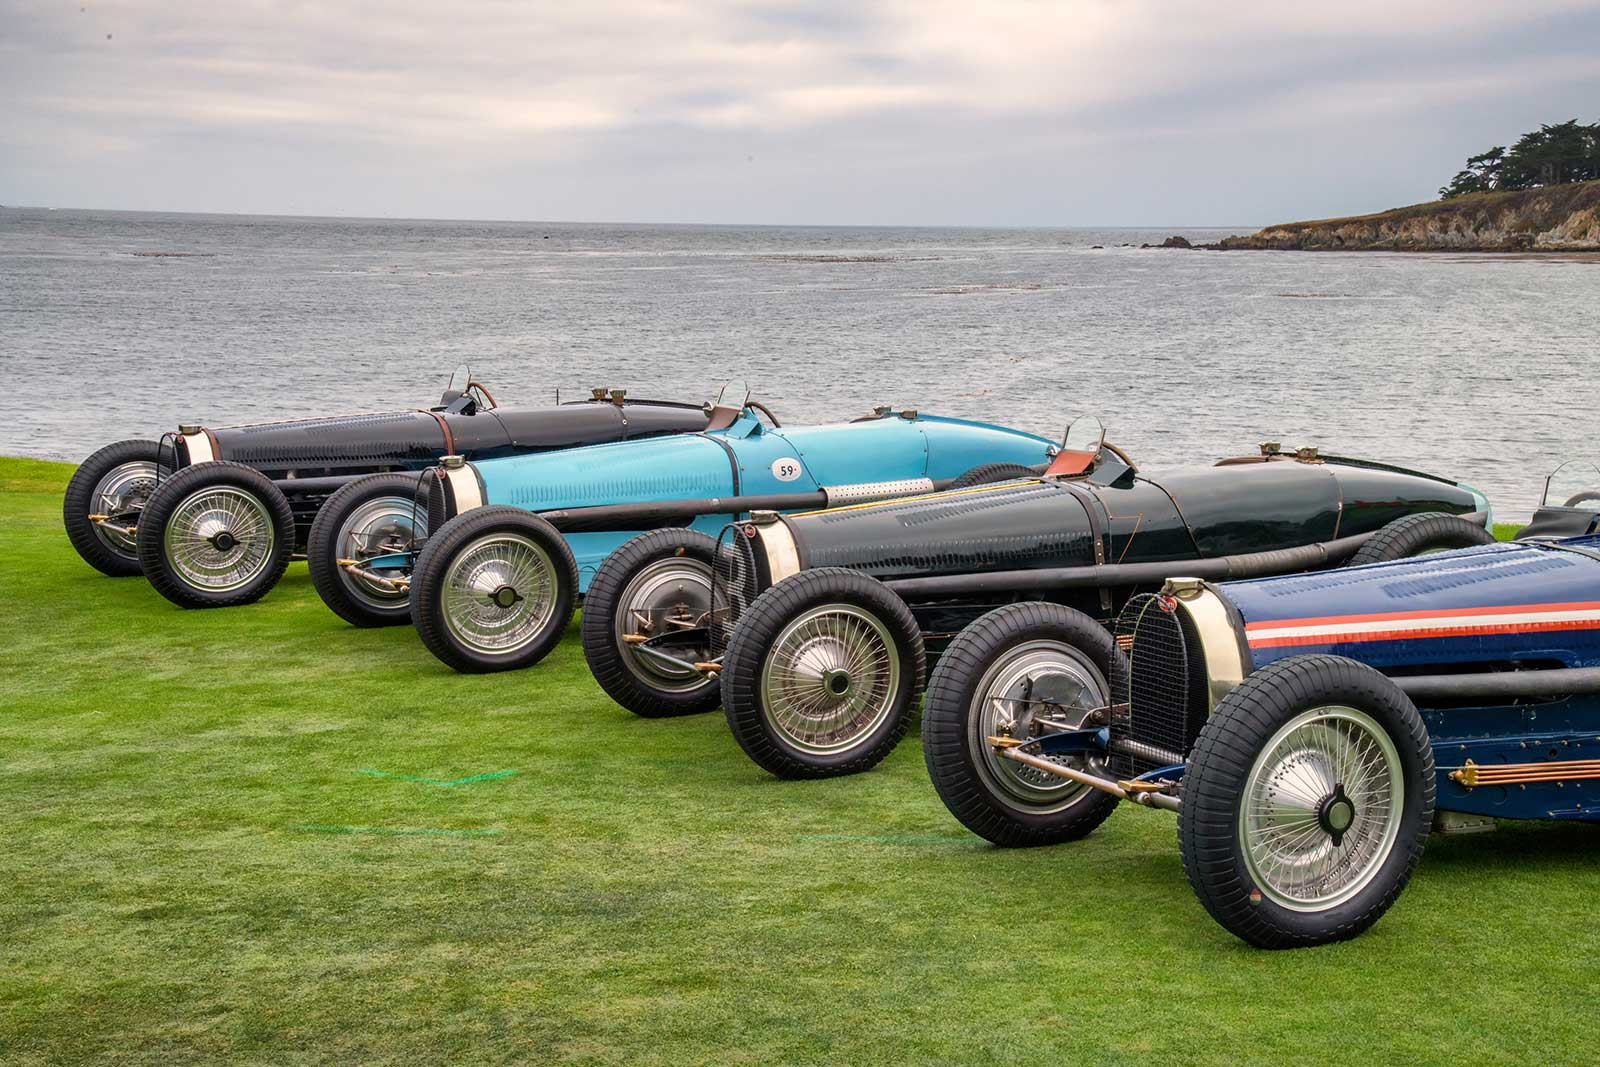 Four Bugattis lined up along the water at the Pebble Beach Concours d'Elegance